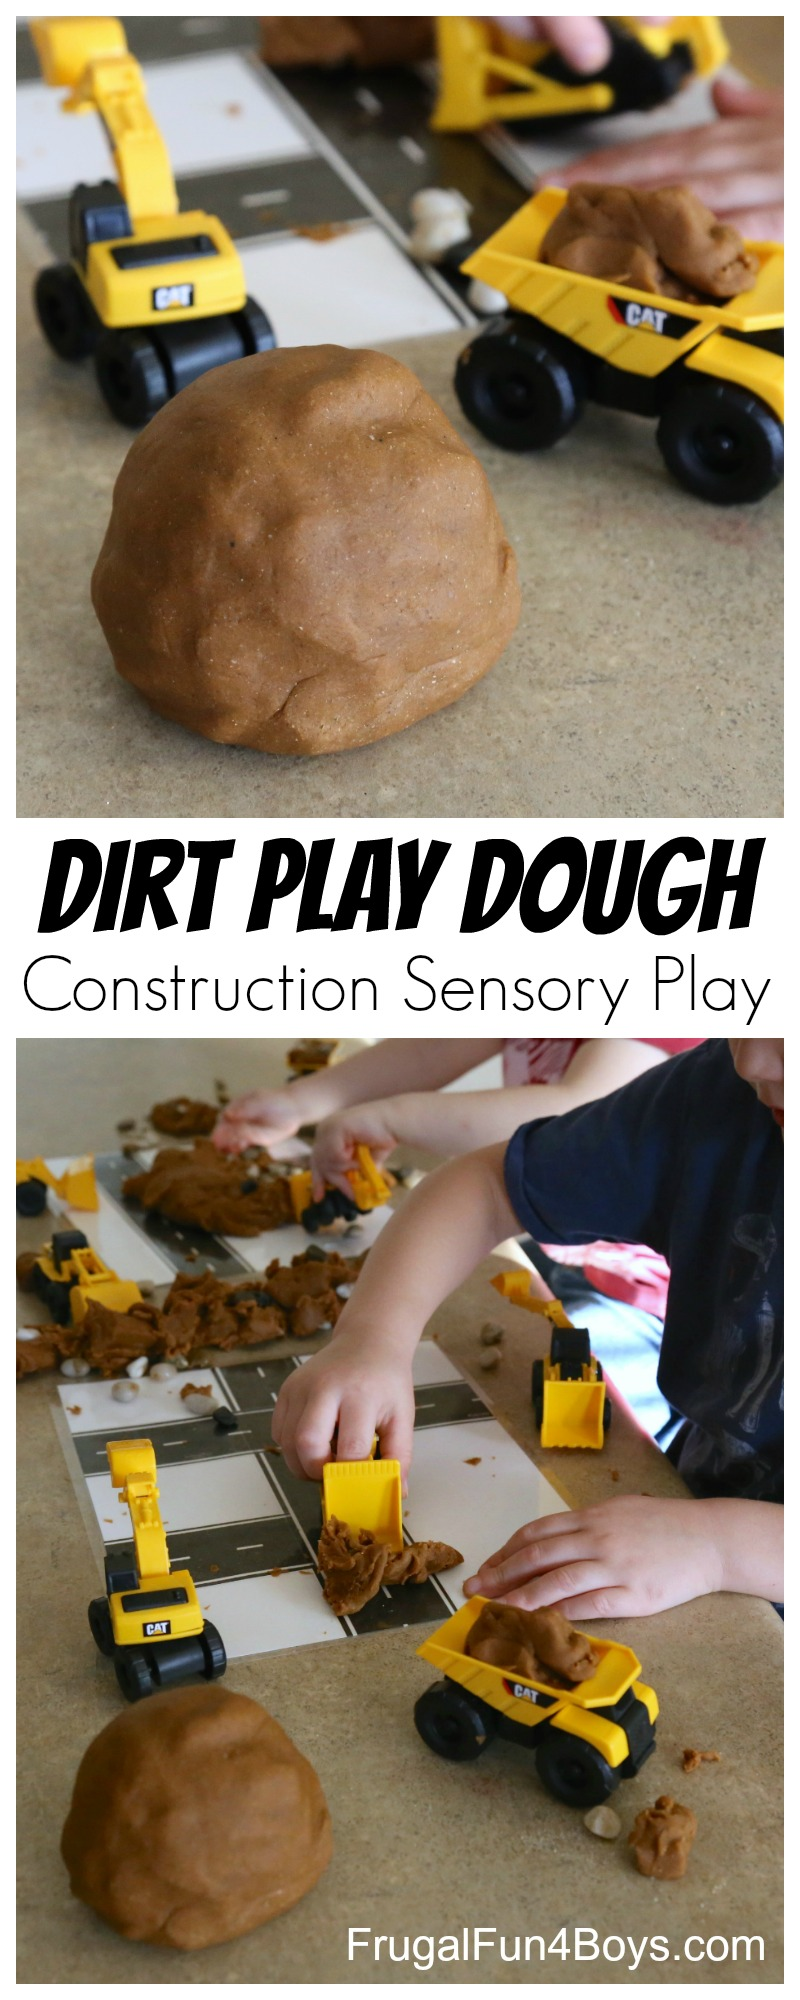 How to Make Dirt Play Dough